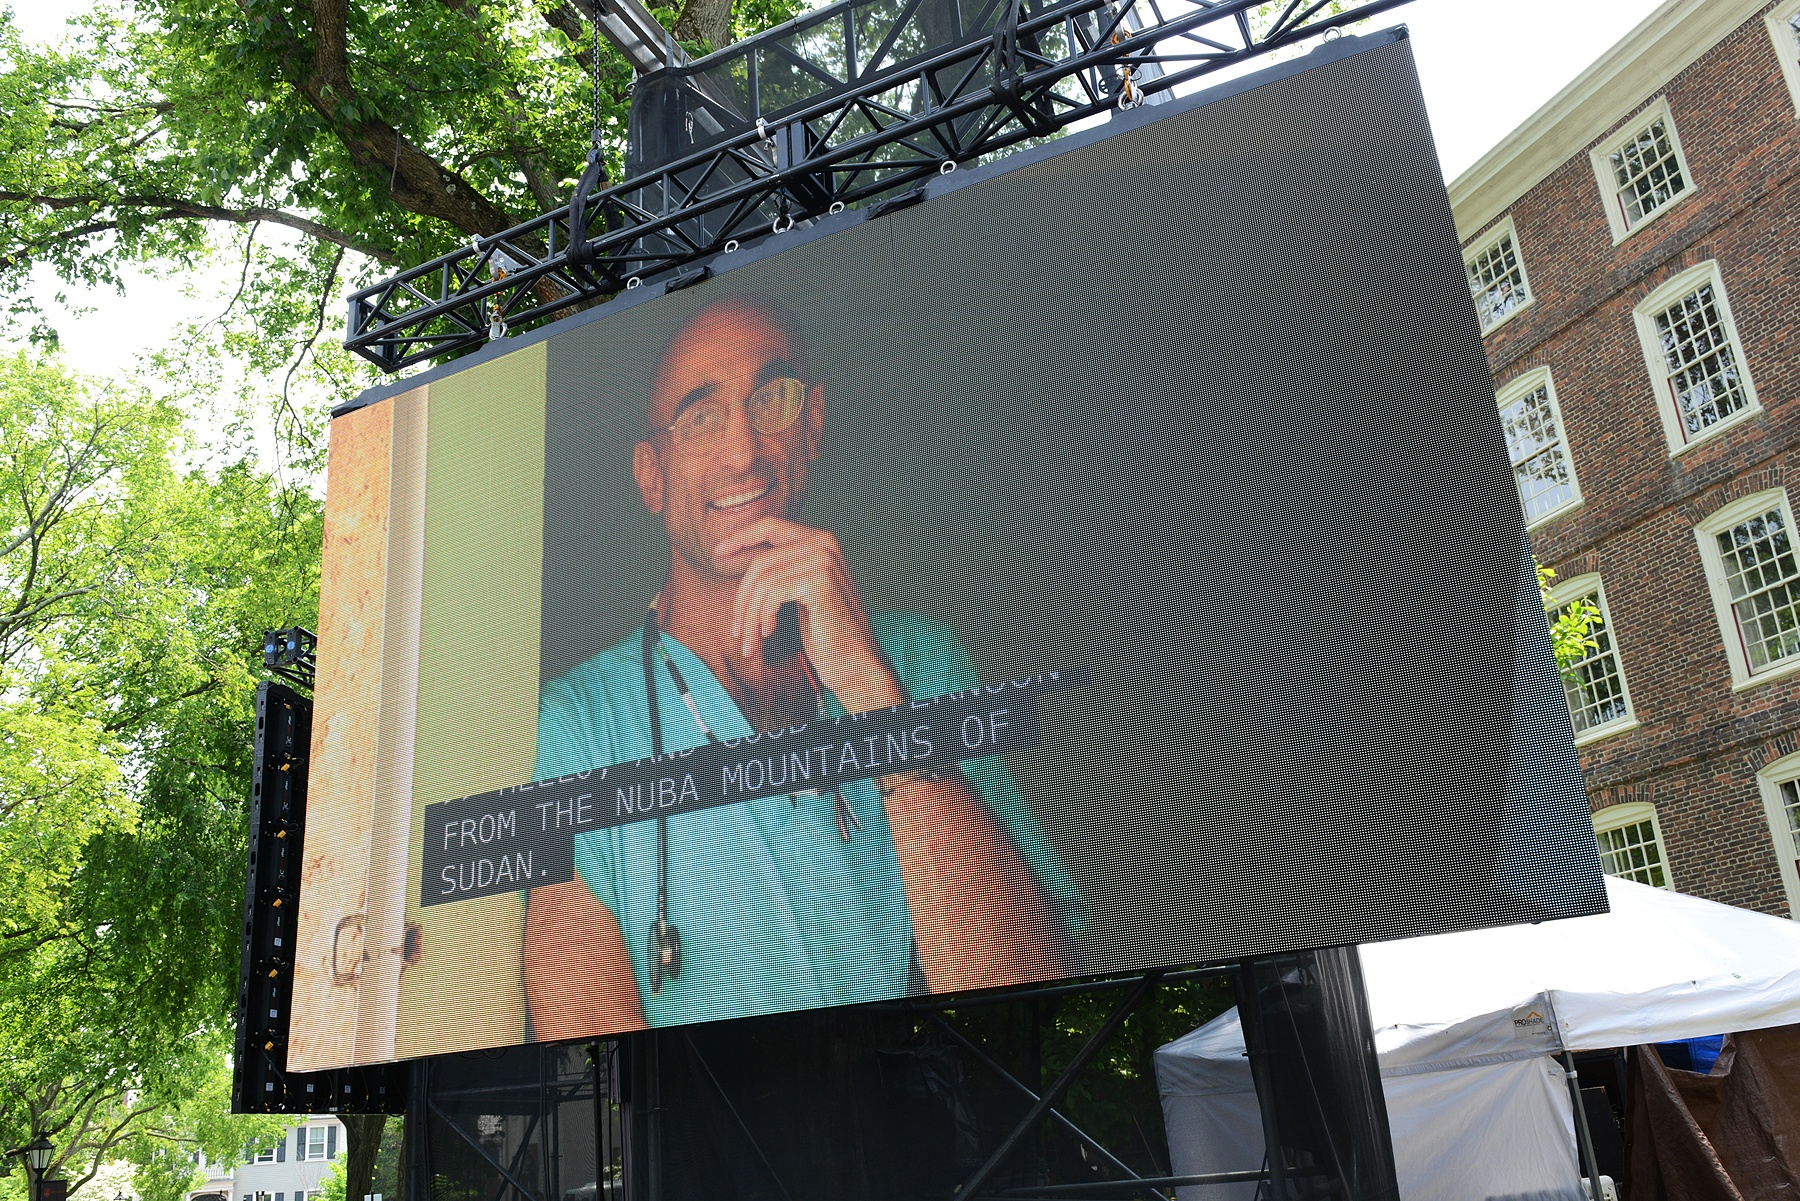 N A BREAK FROM PROTOCOL THOMAS CATENA '86 IN LONG DISTANCE SKYPE LINK ACCEPTING HIS HONORARY DEGREE Brown University's 248th Commencement, May 29, 2016. The ceremony concludes Brown's three-day Commencement and Reunion Weekend, which brings more than 10,000 people to College Hill.